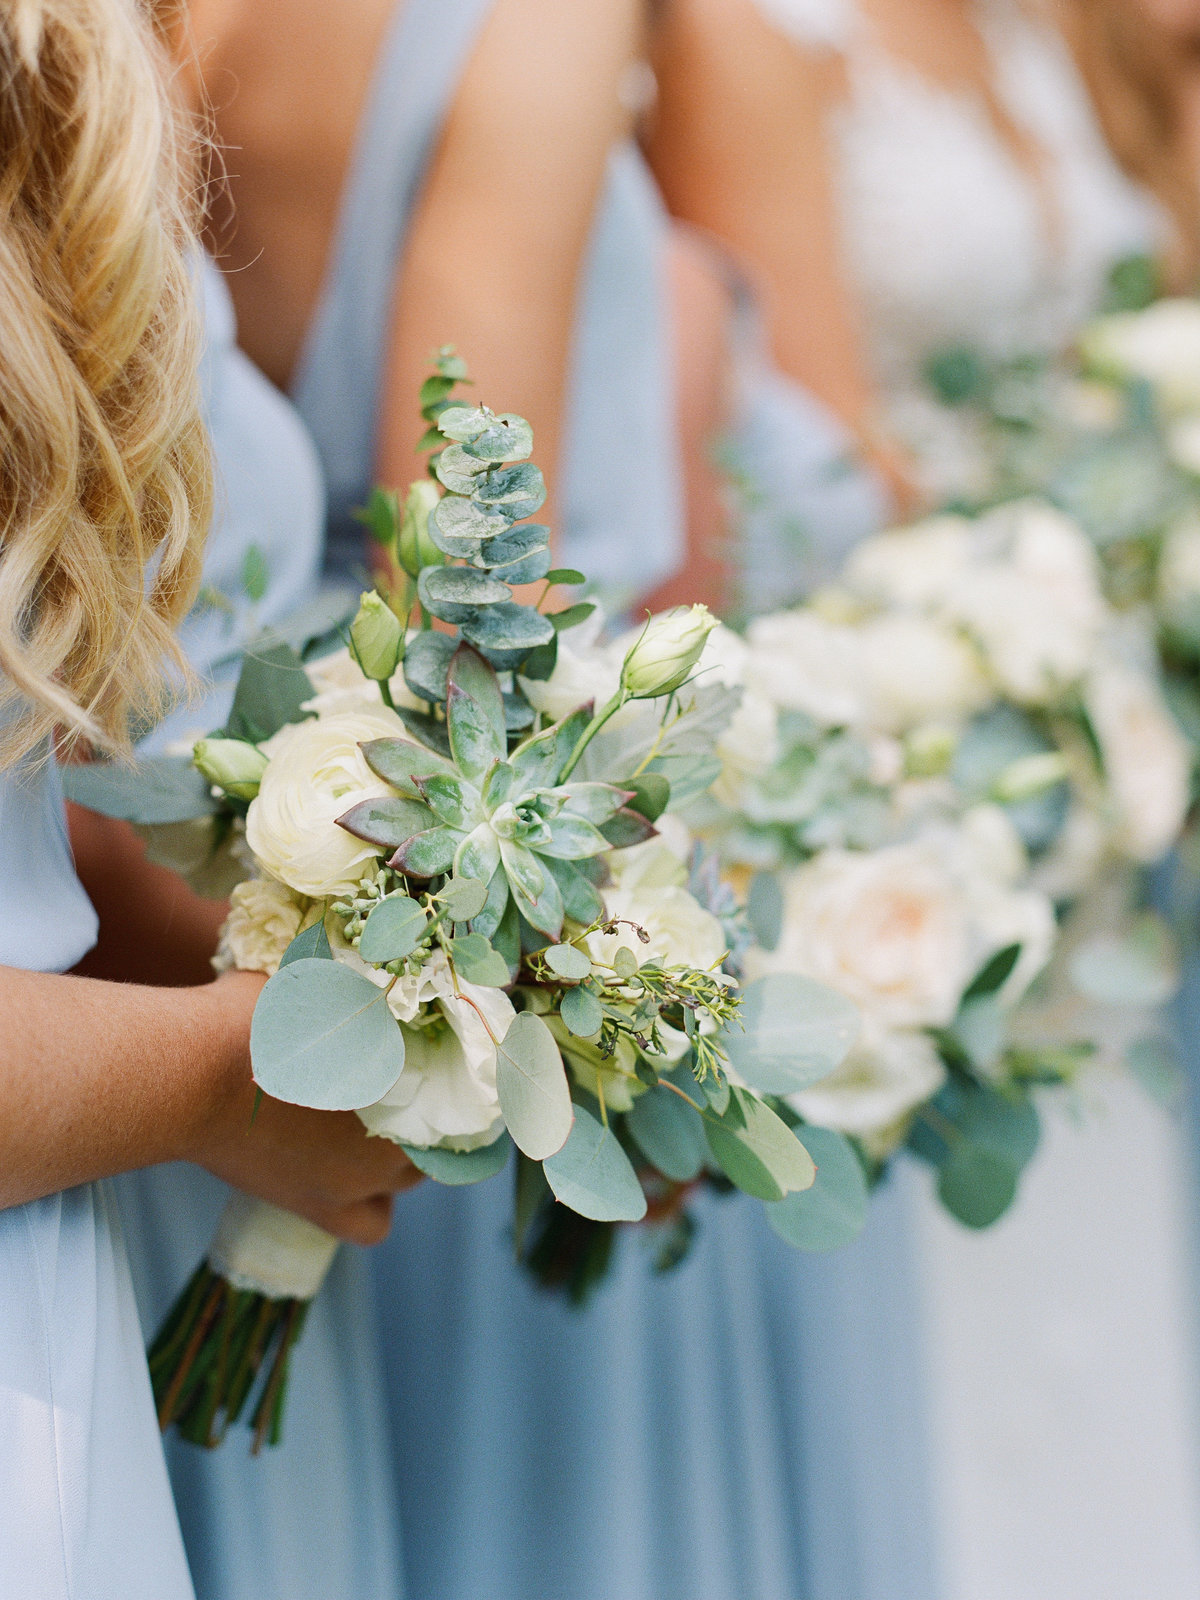 Bridesmaid Bouquet Greystone at Piedmont Park Wedding